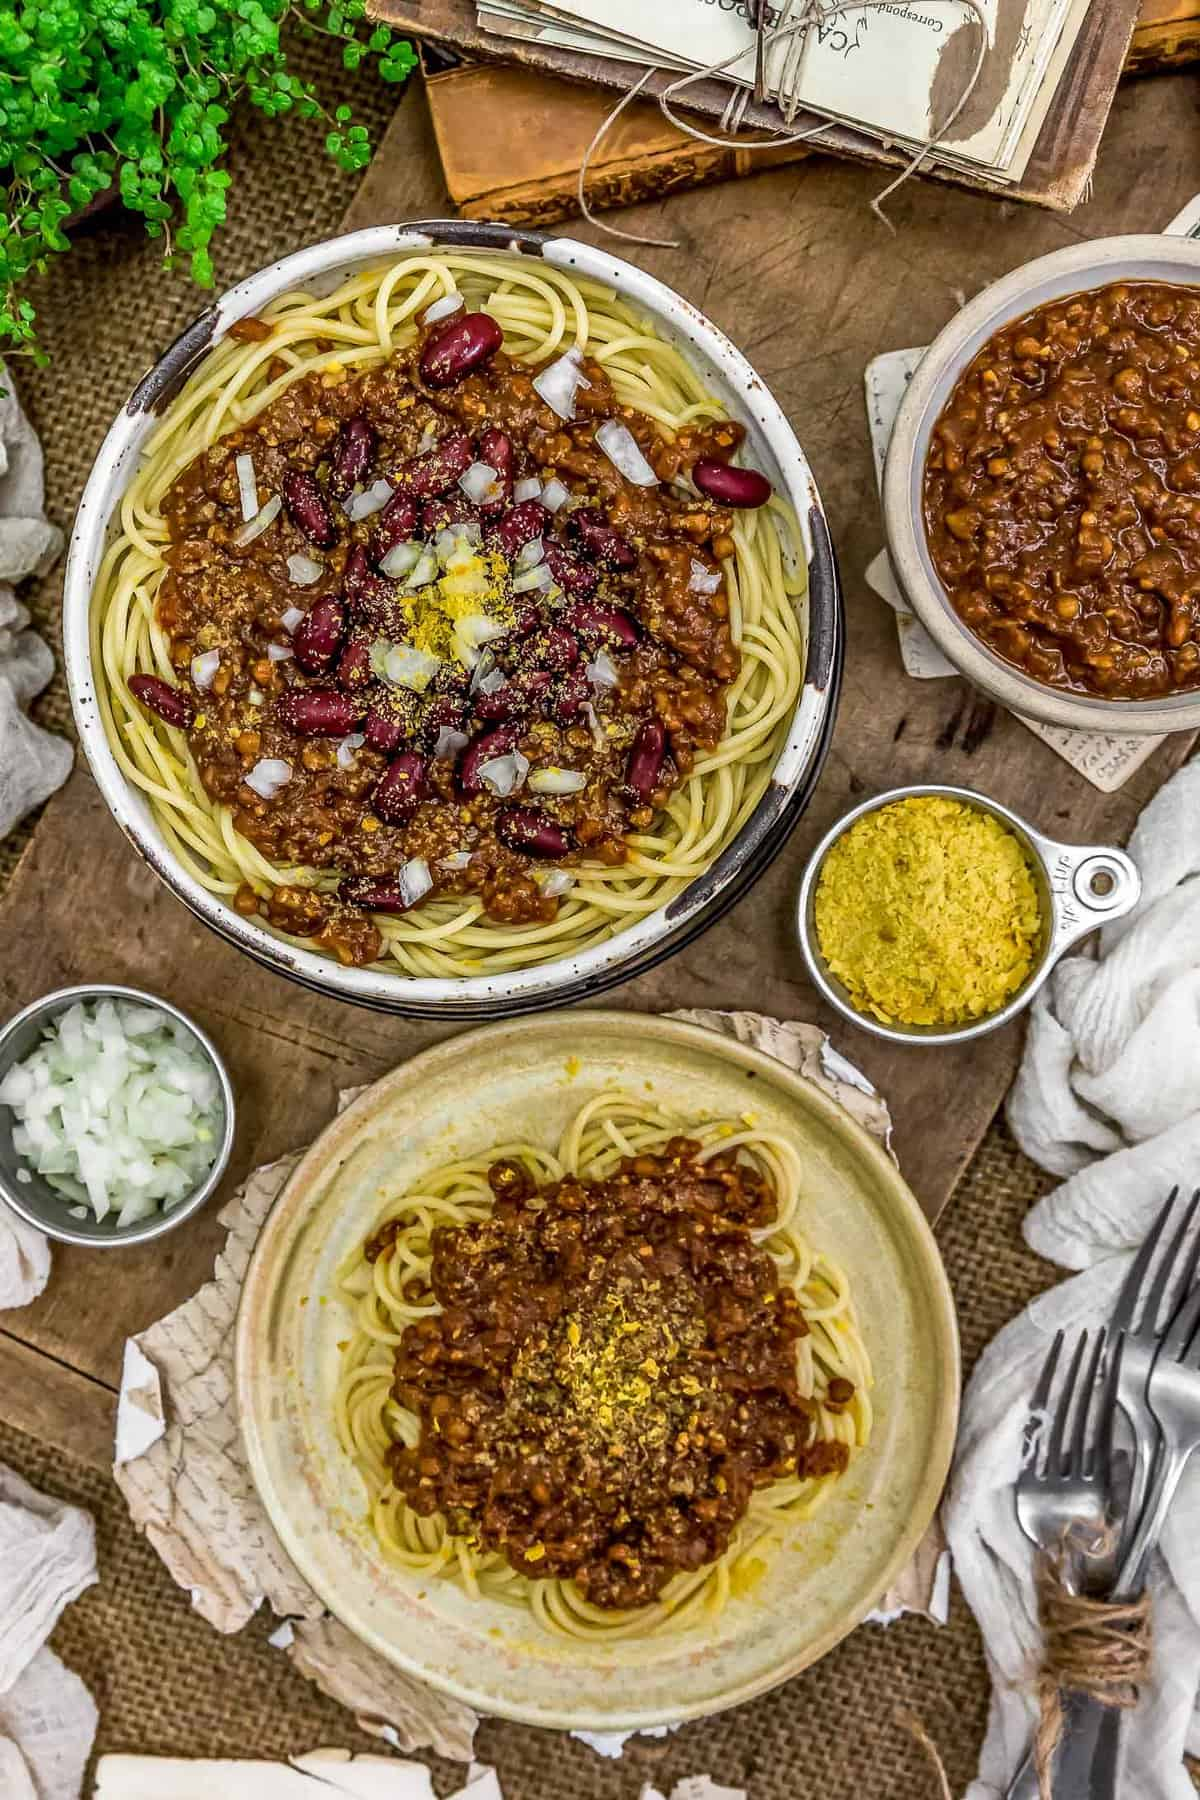 Tablescape of Vegan Cincinnati Chili